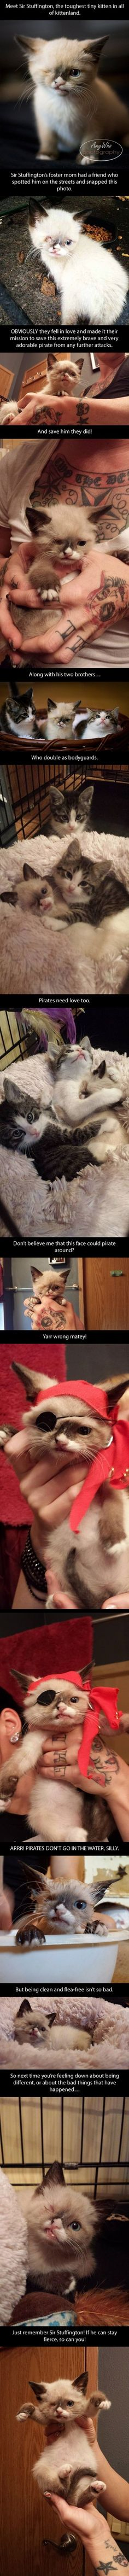 pirate kitten. so f-ing cute i just about cried!!!